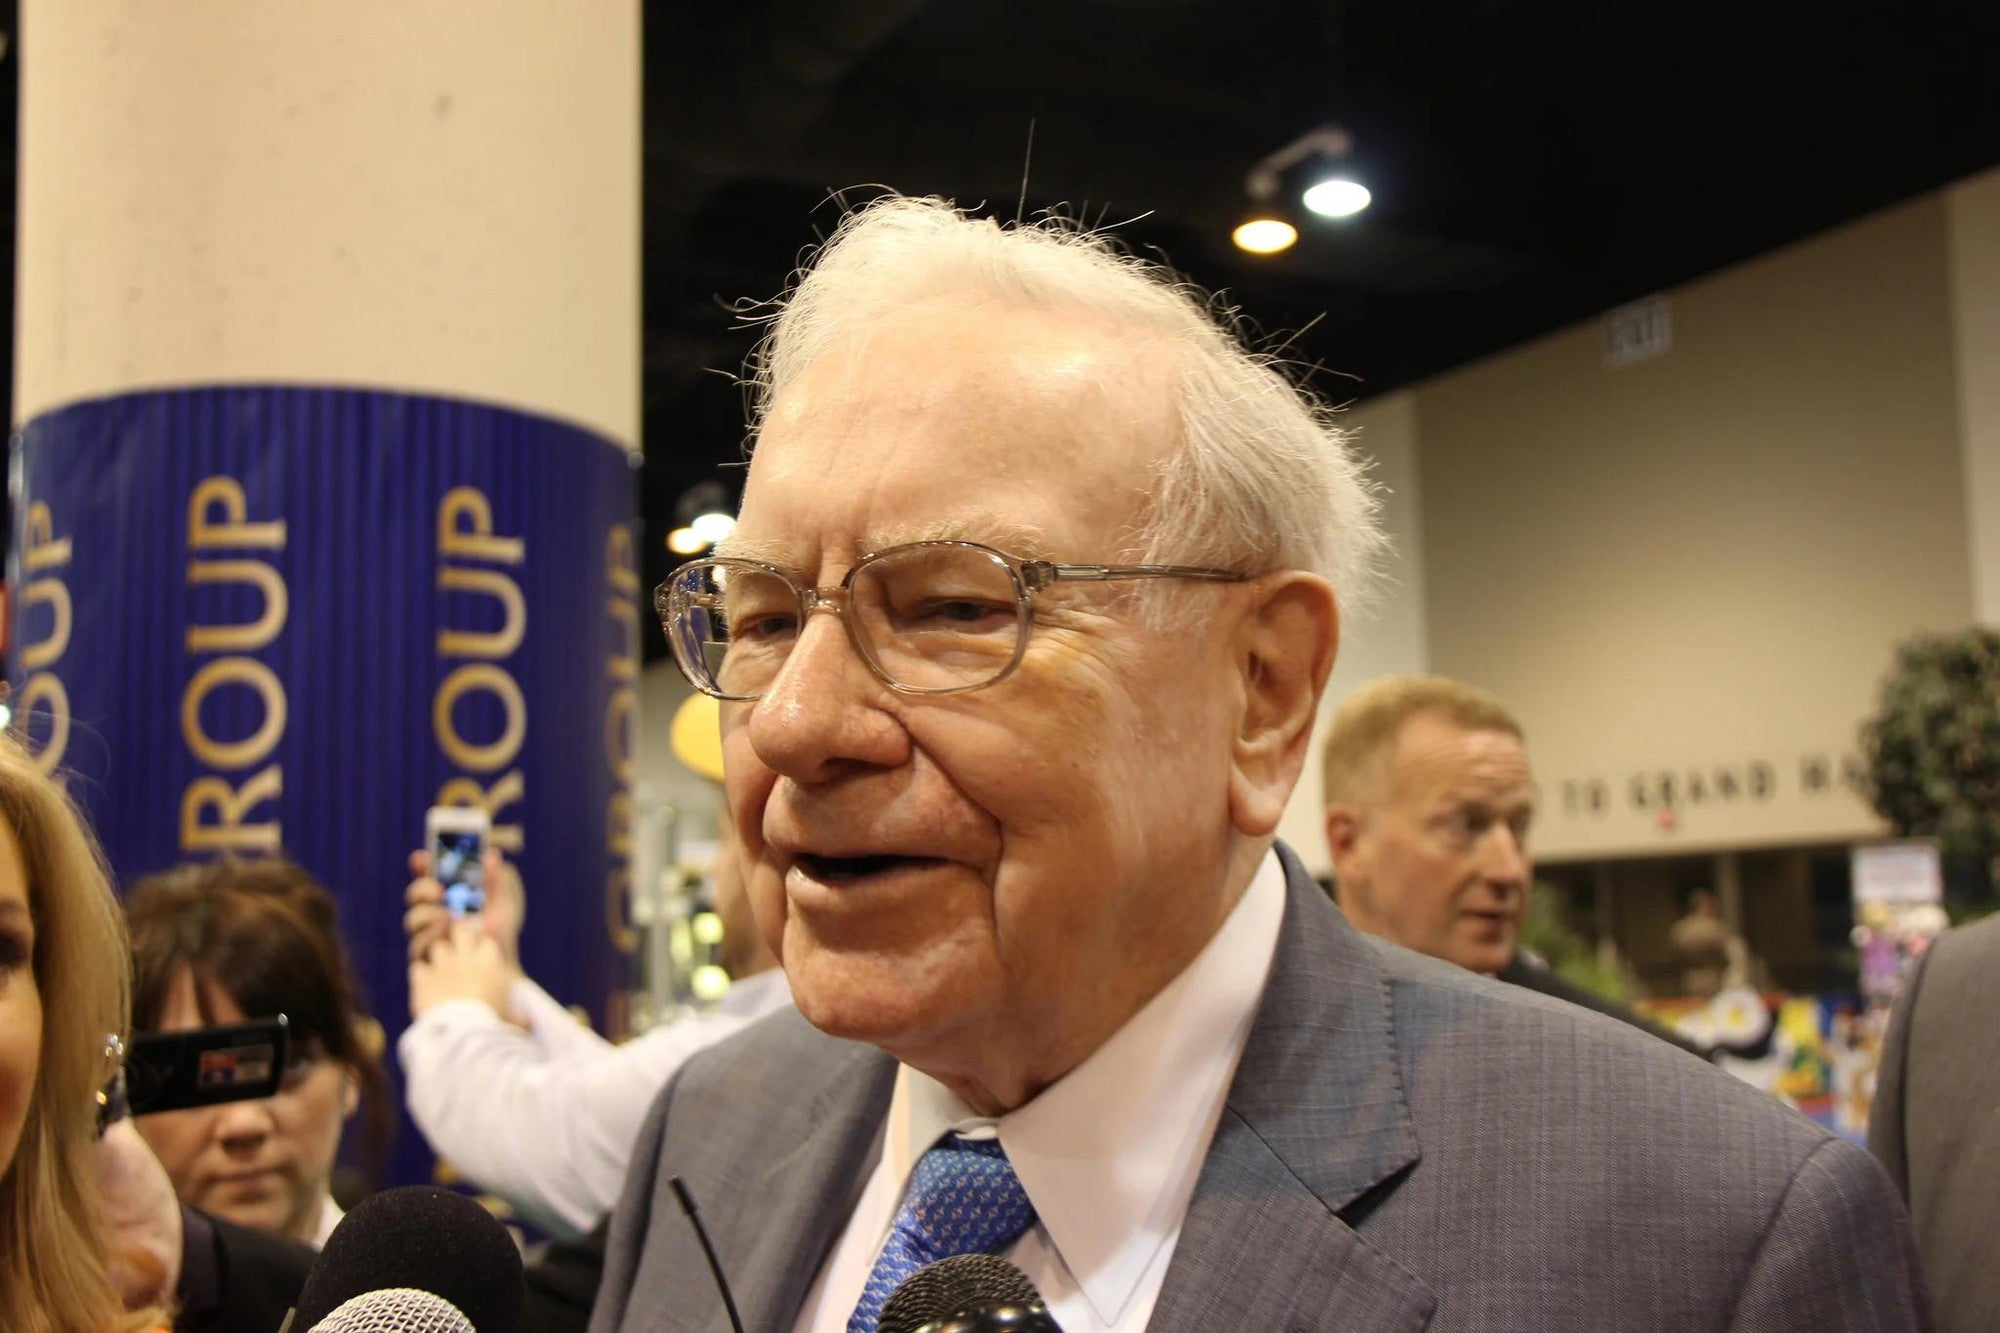 3 Underrated Warren Buffett Stocks That Are Smart Buys Right Now